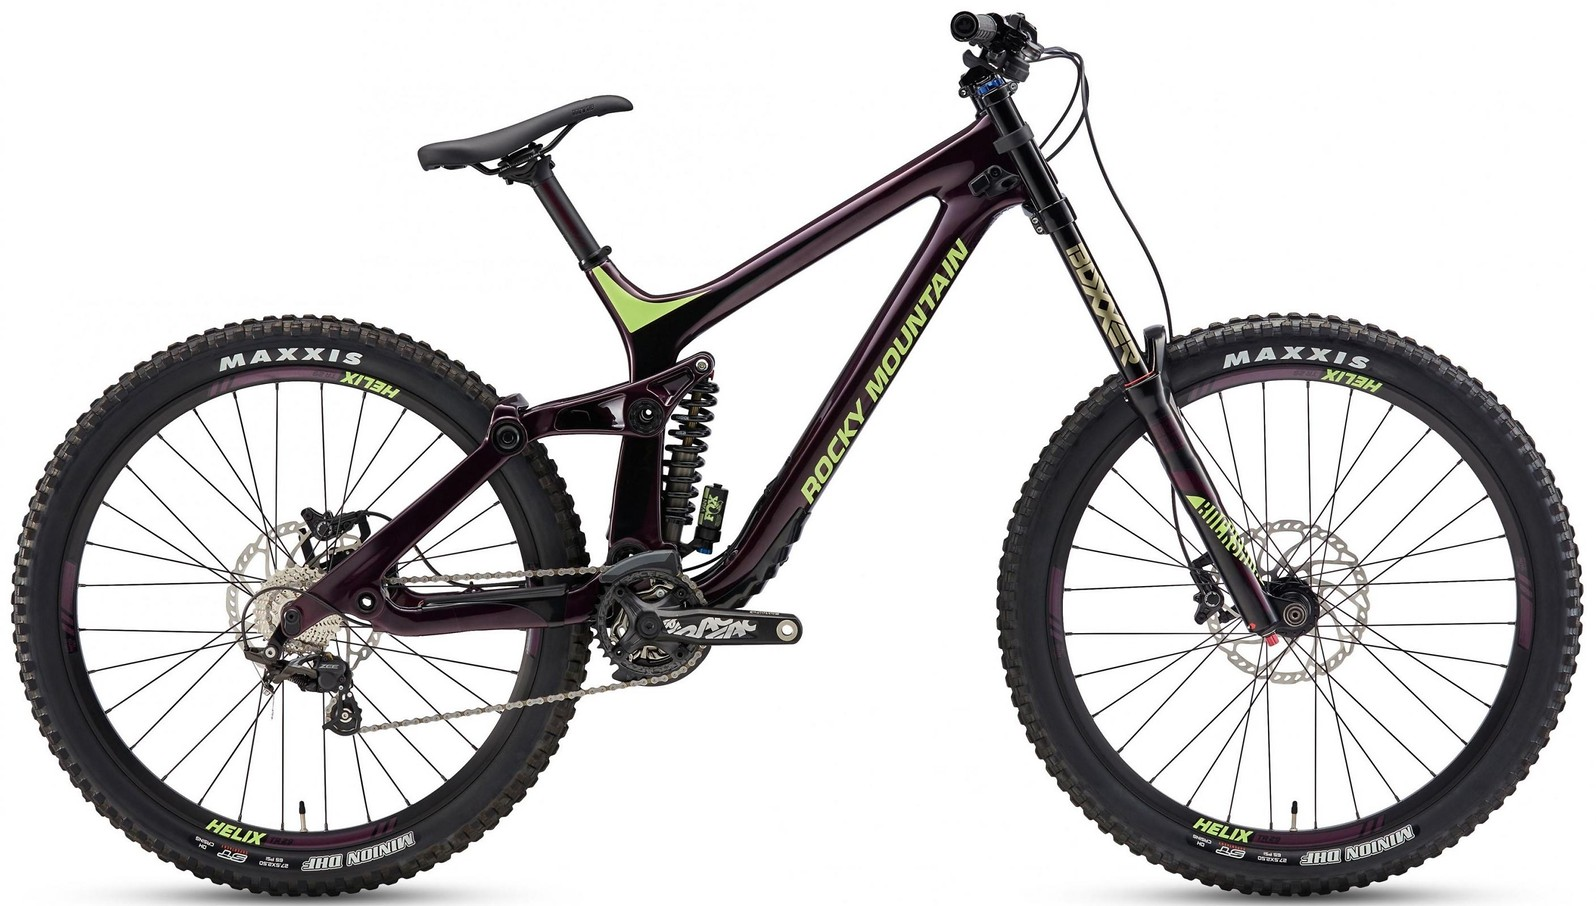 2017 Rocky Mountain Maiden Park Bike